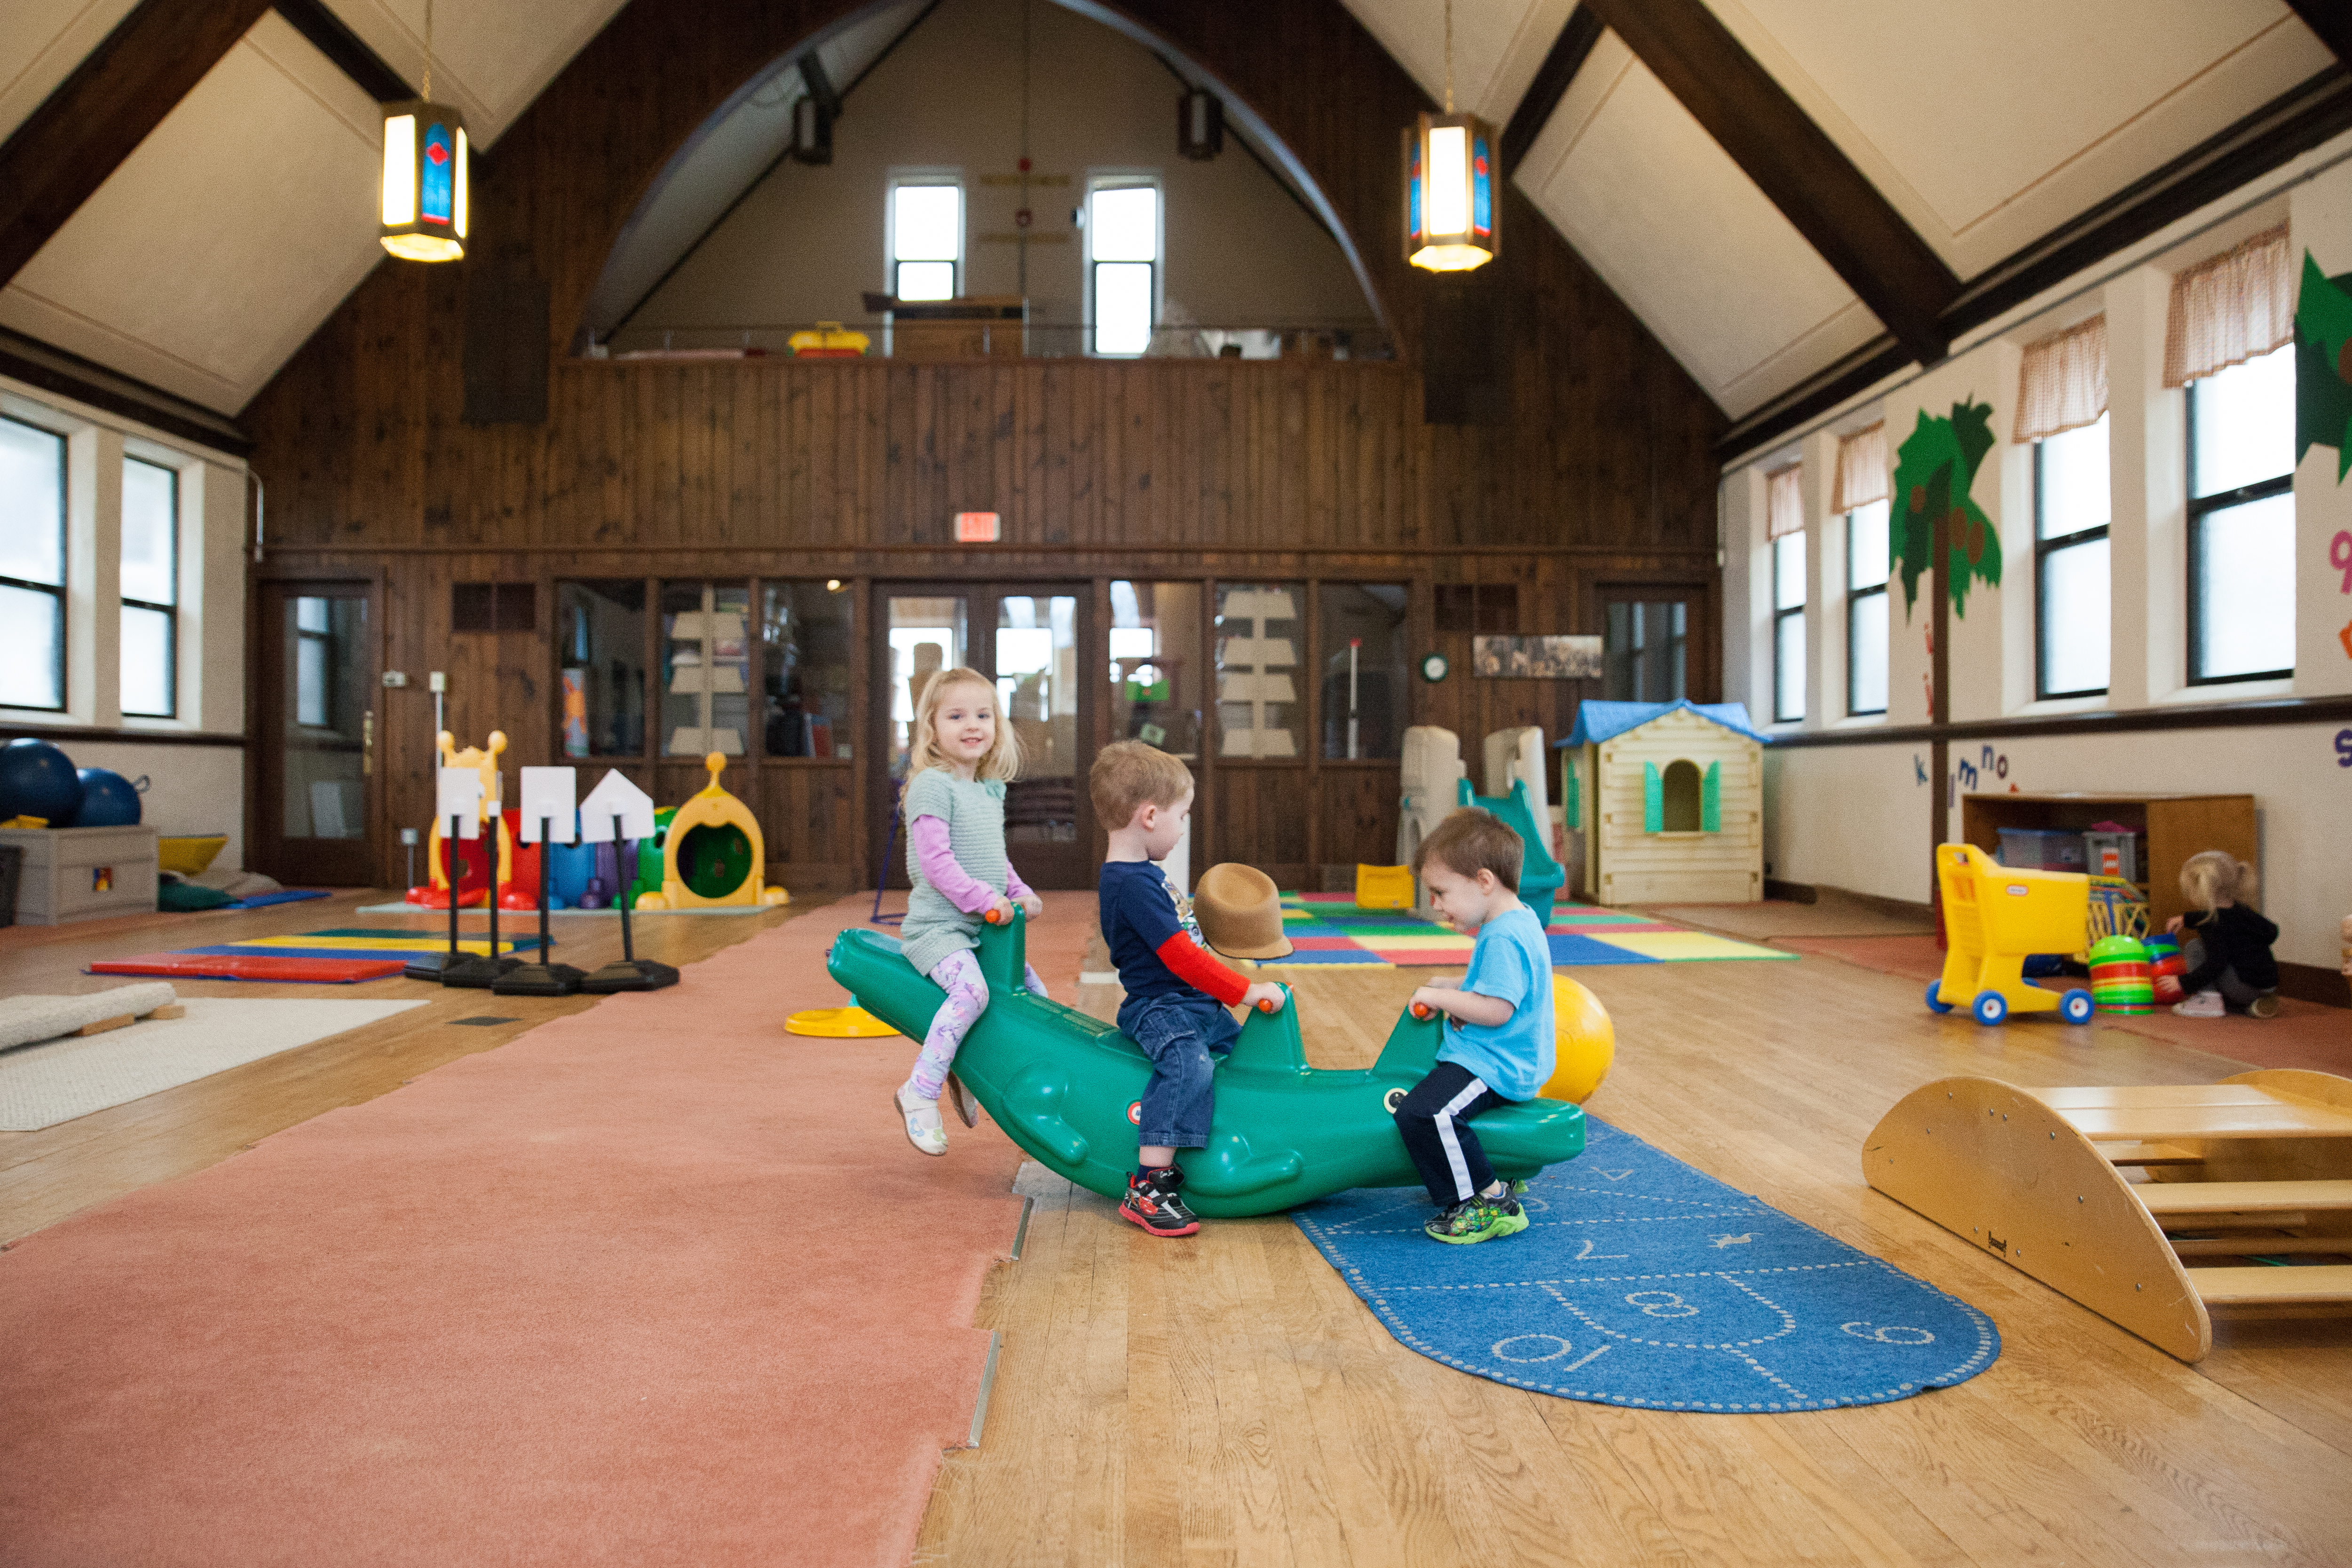 Daycare Costs | Child Care Resources | Family Care Kimberly, WI